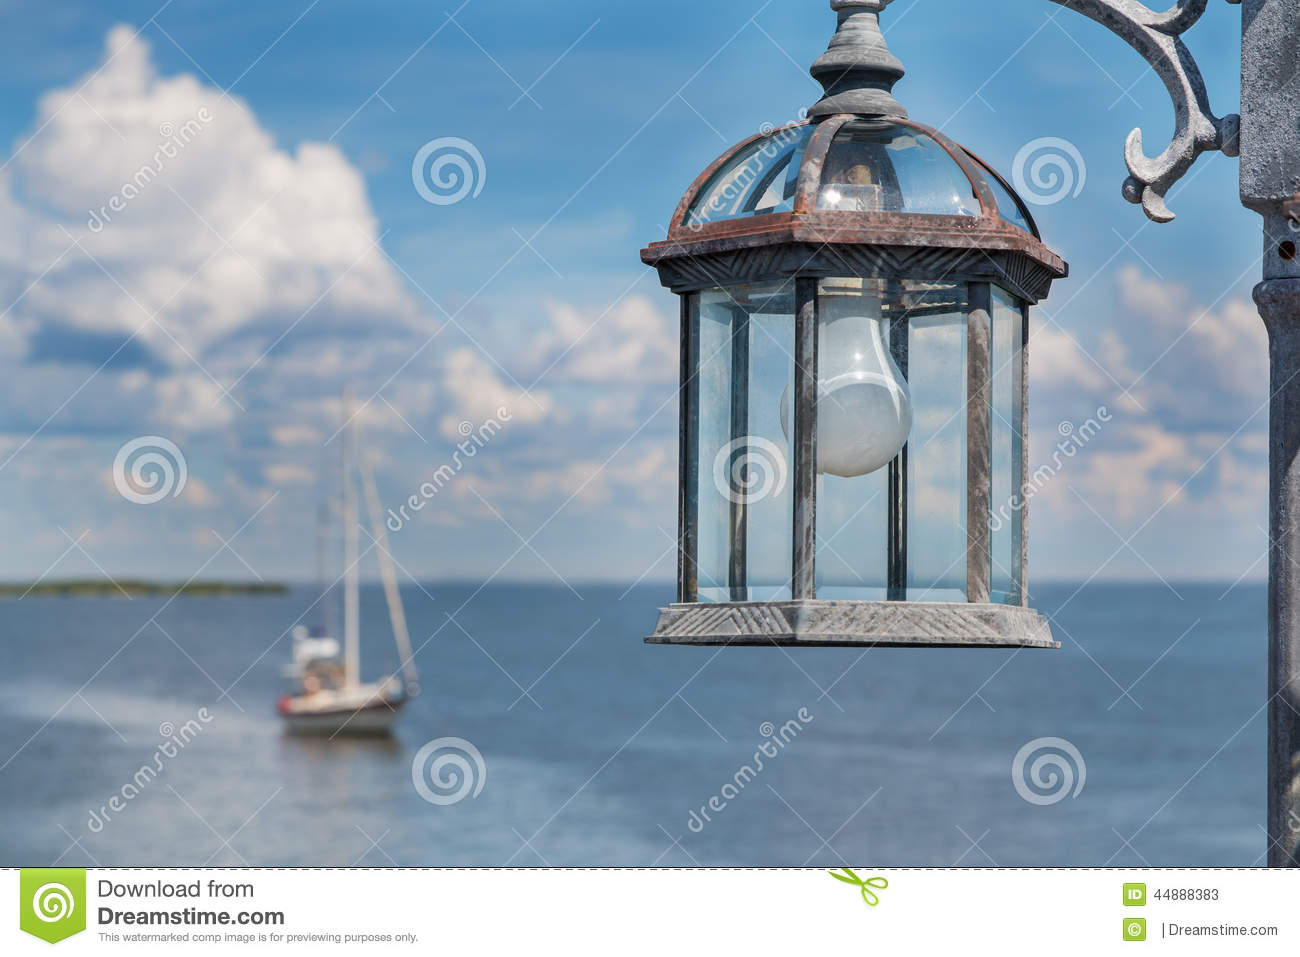 Lamp post with light bulb by the ocean stock image image of lamp post with light bulb by the ocean aloadofball Choice Image